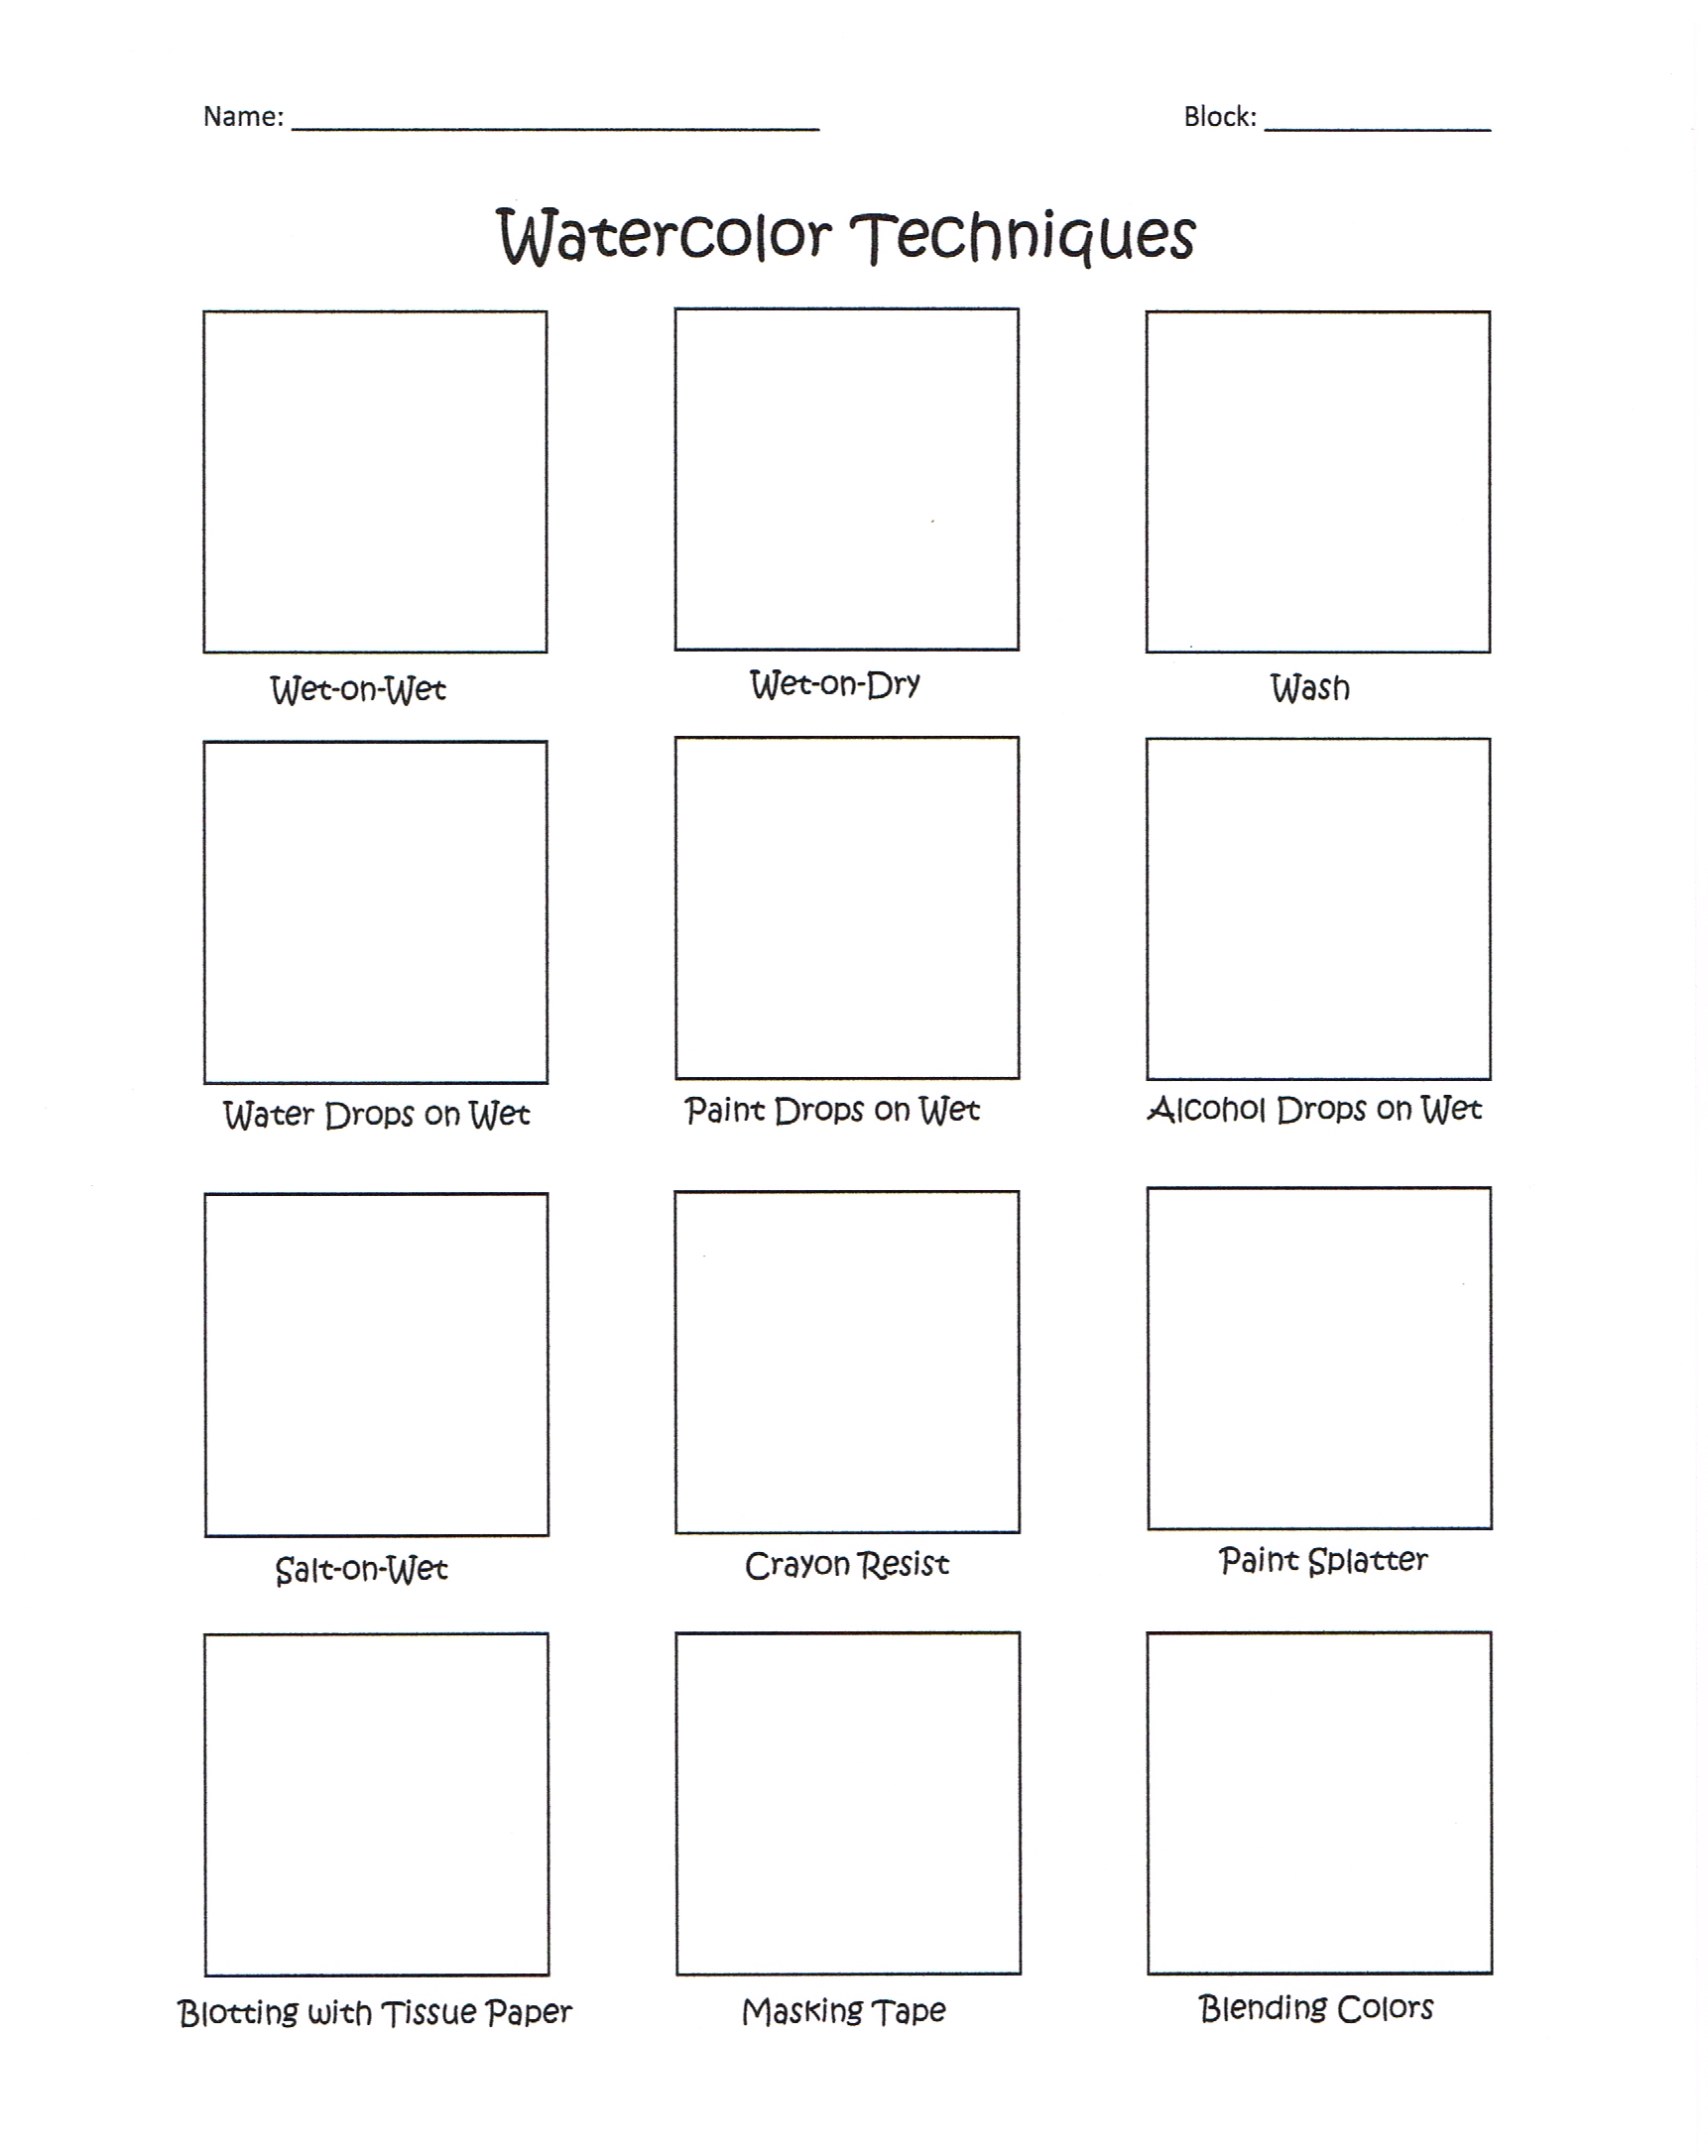 I Made A Watercolor Worksheet For My Art 1 Classes